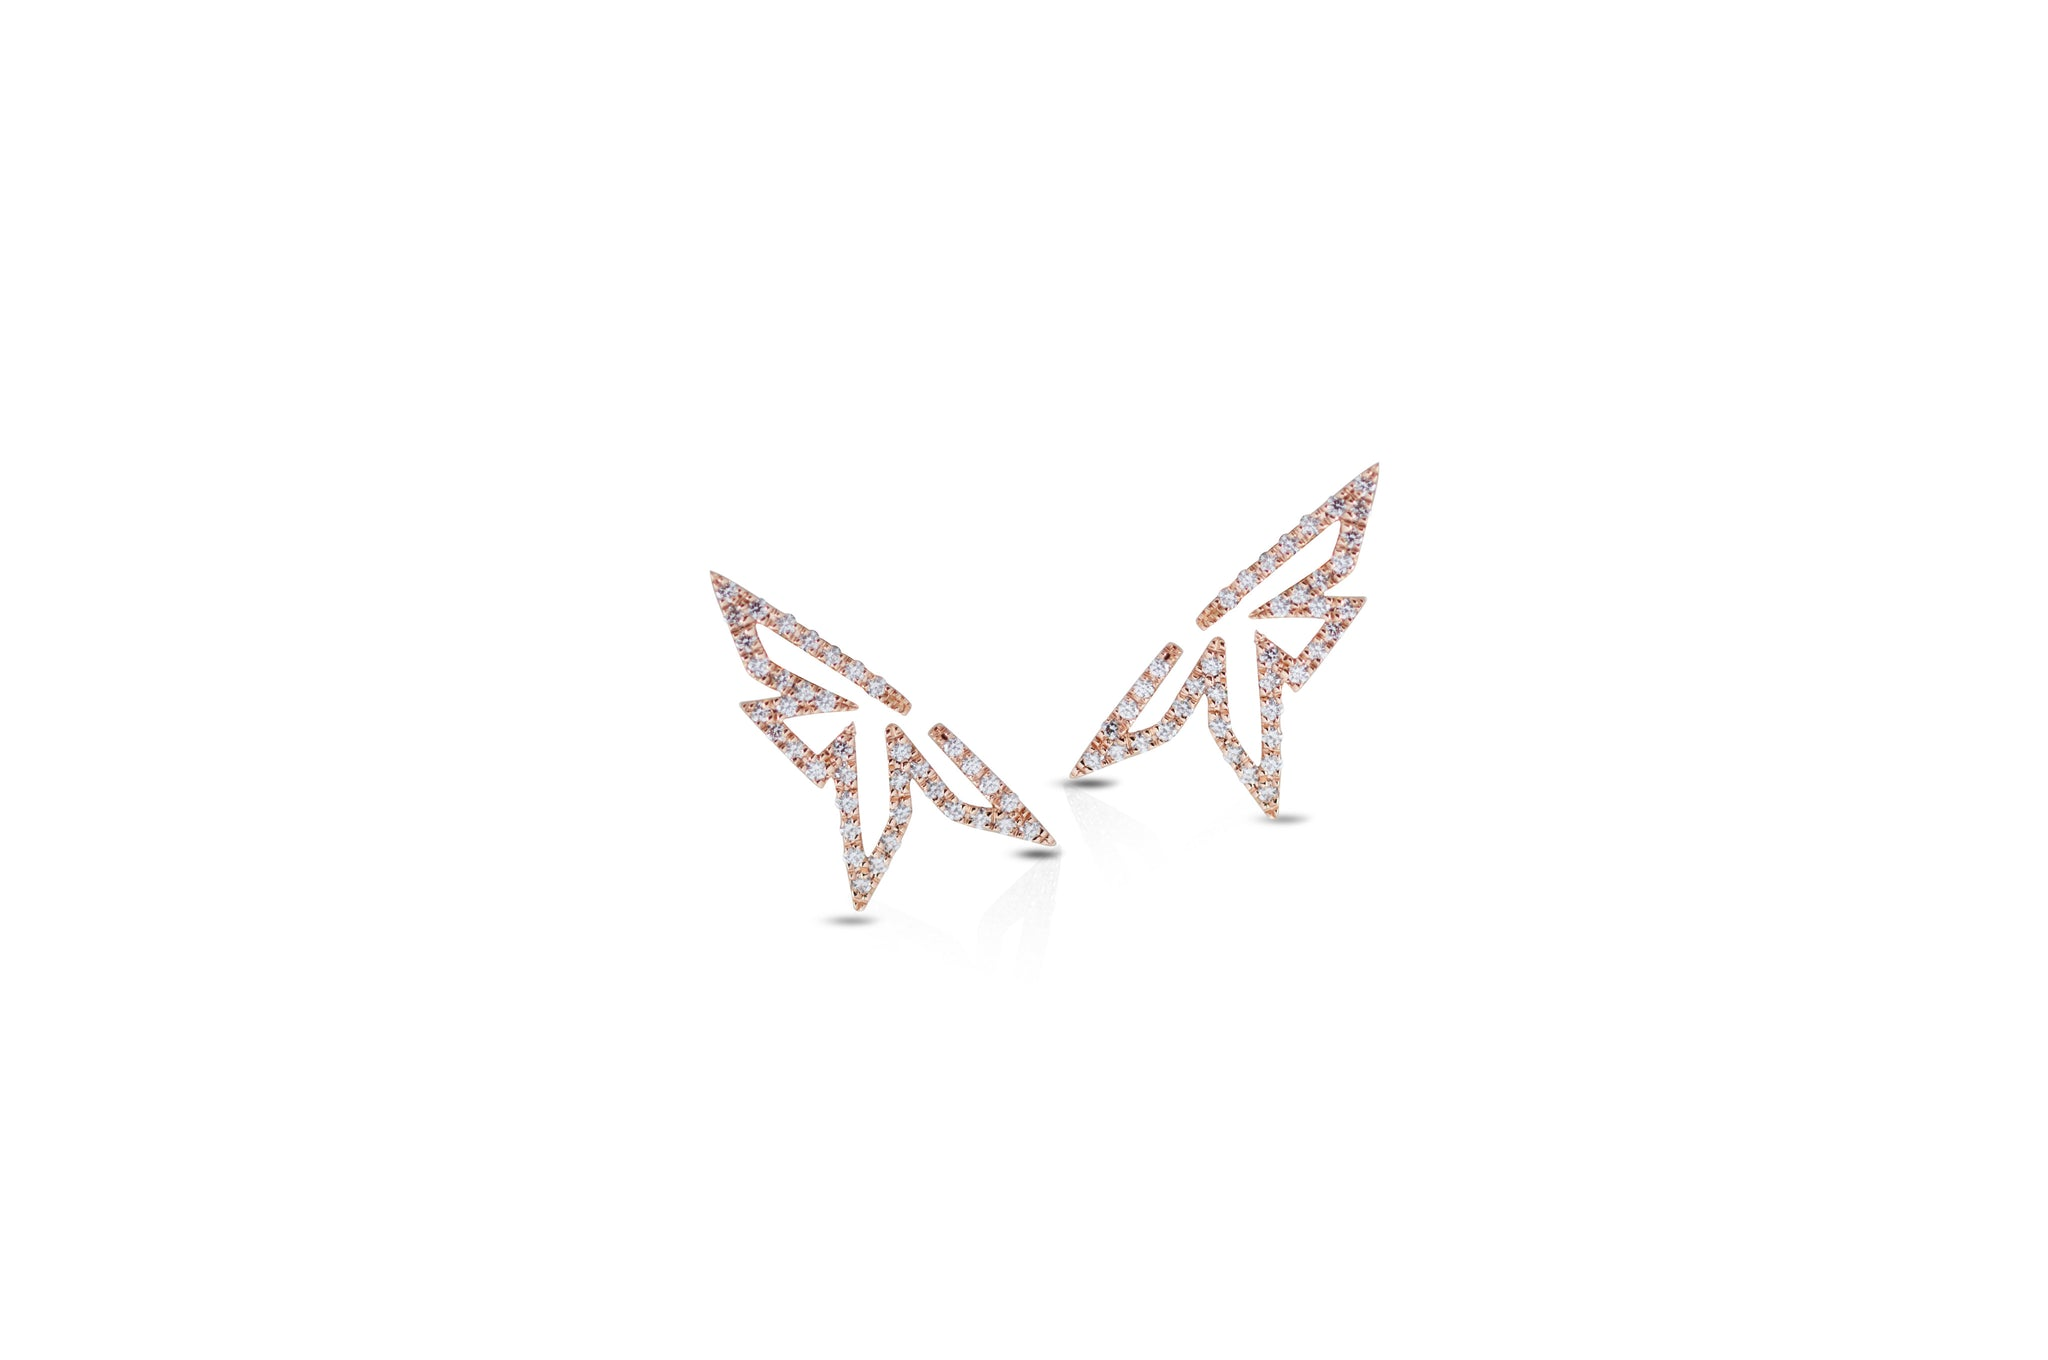 Origami Mini Silhouette Diamond Earrings